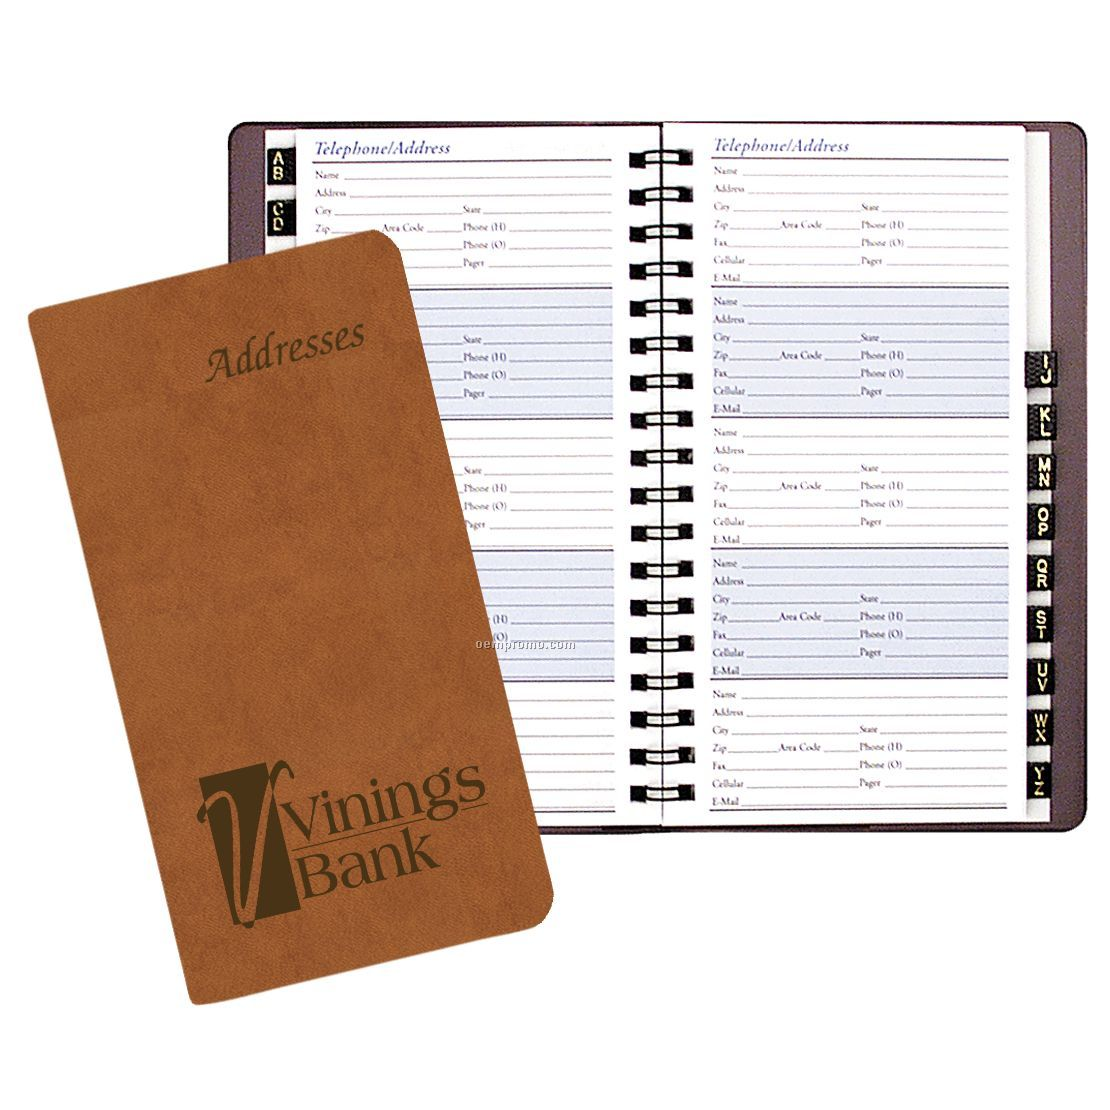 Book Covering Contact Micron : Address books china wholesale page